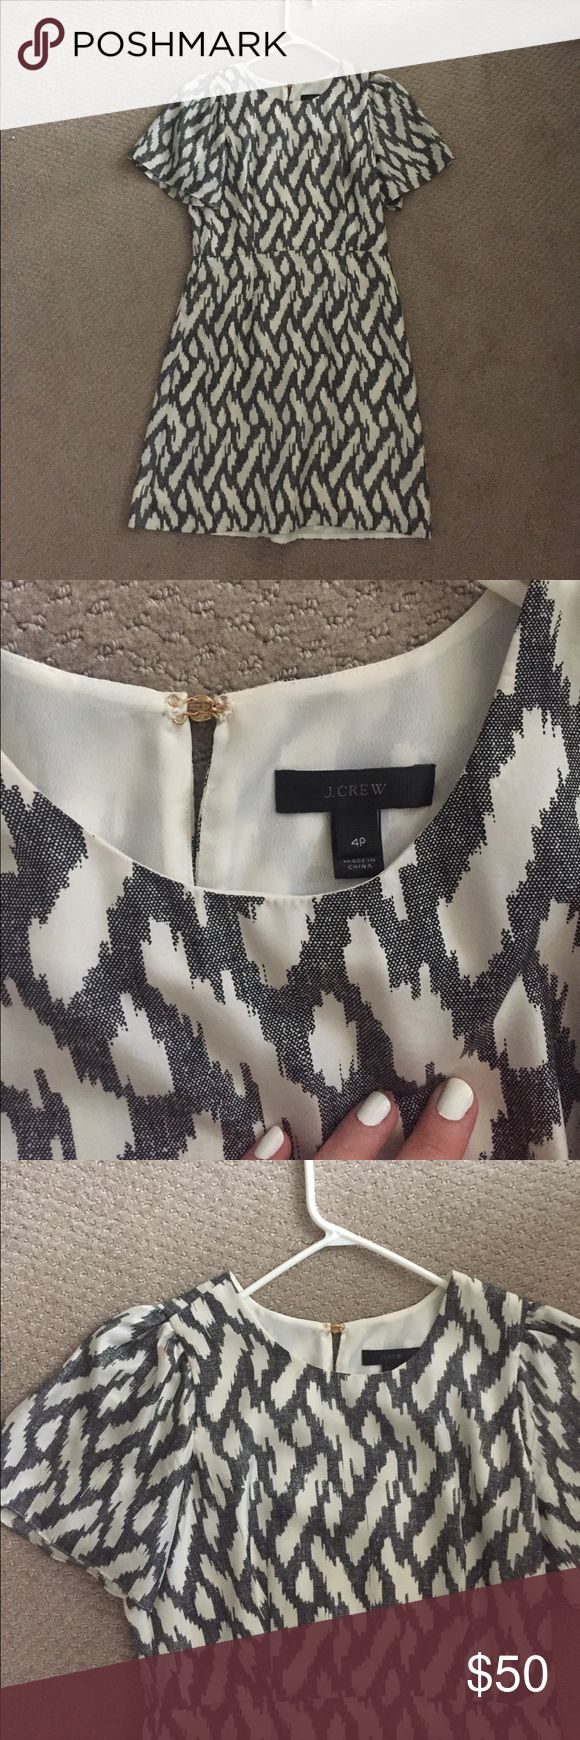 Silk J Crew dress 100% silk dress by J Crew size 4P. Worn only once - perfect condition except for tiny pink mark on sleeve (pictured) J. Crew Dresses Mini